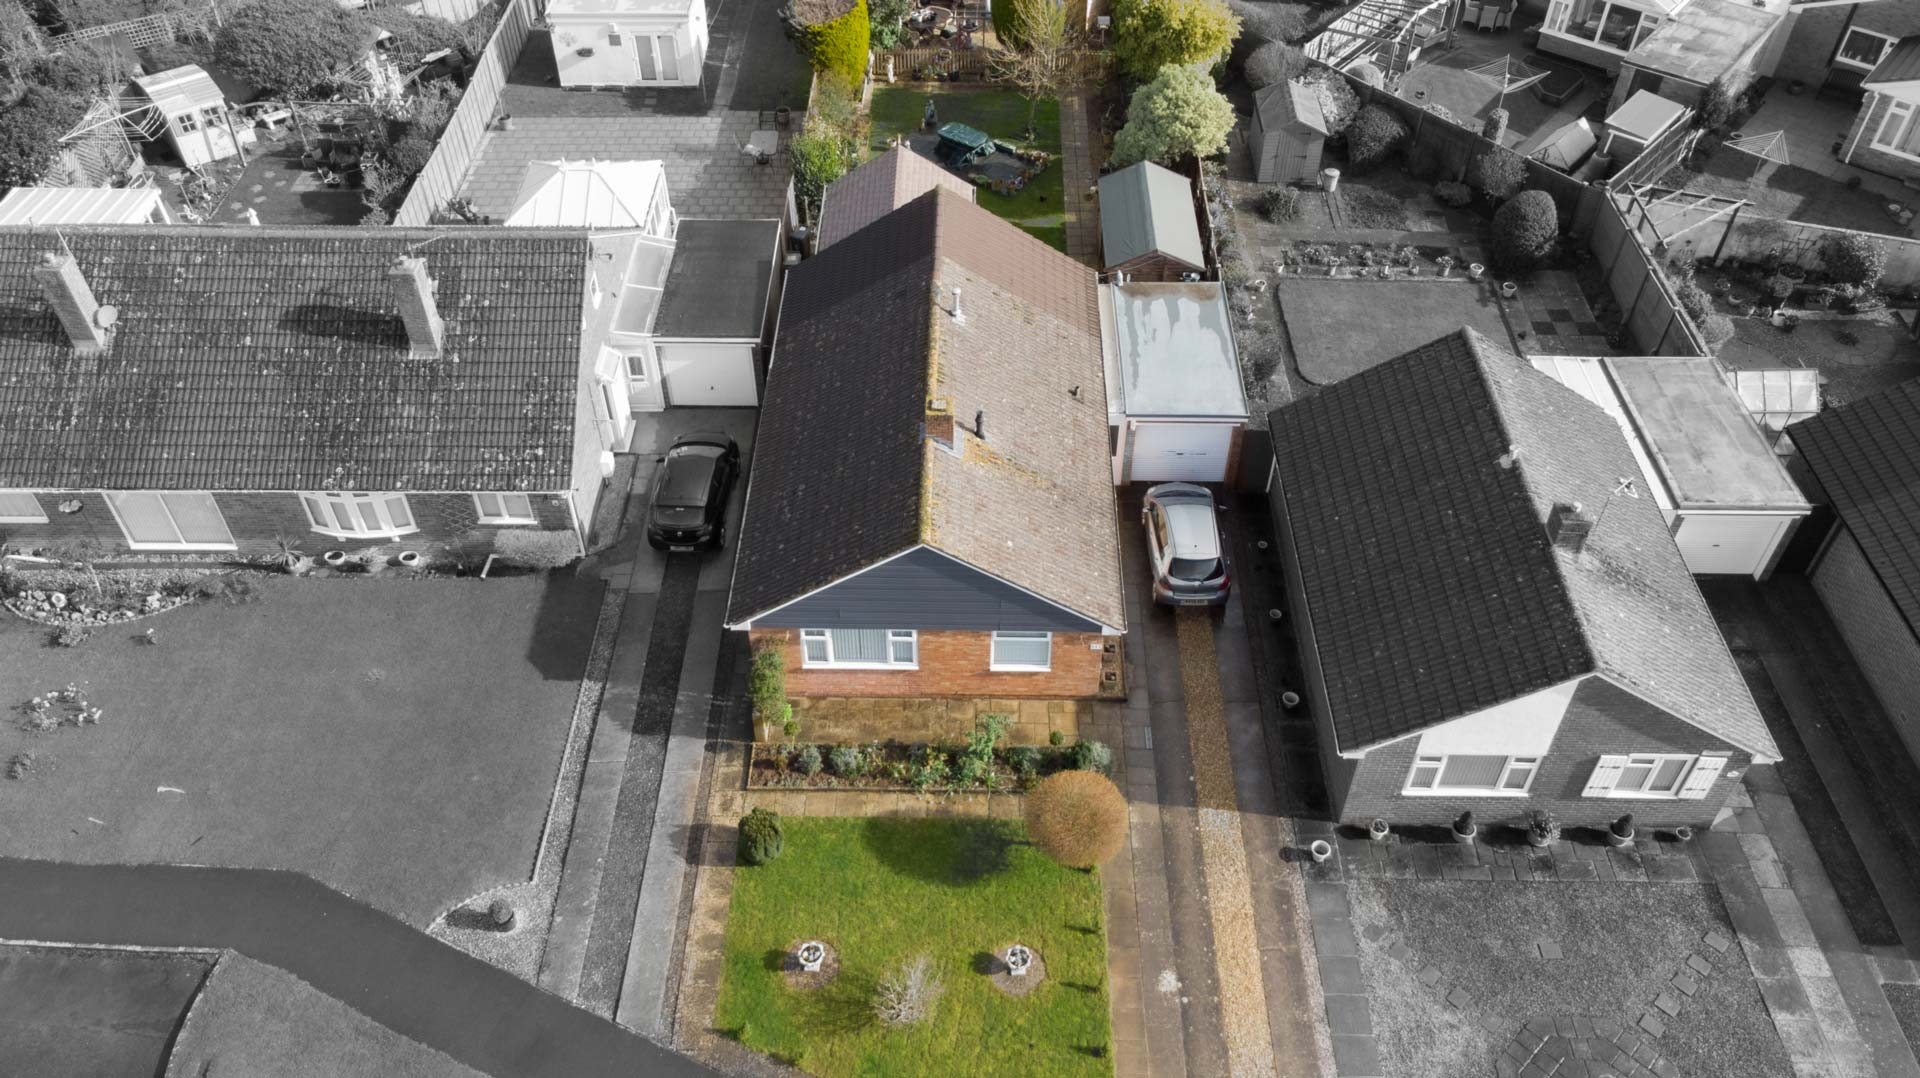 Aerial Drone Photography for CJ Hole's Property Marketing